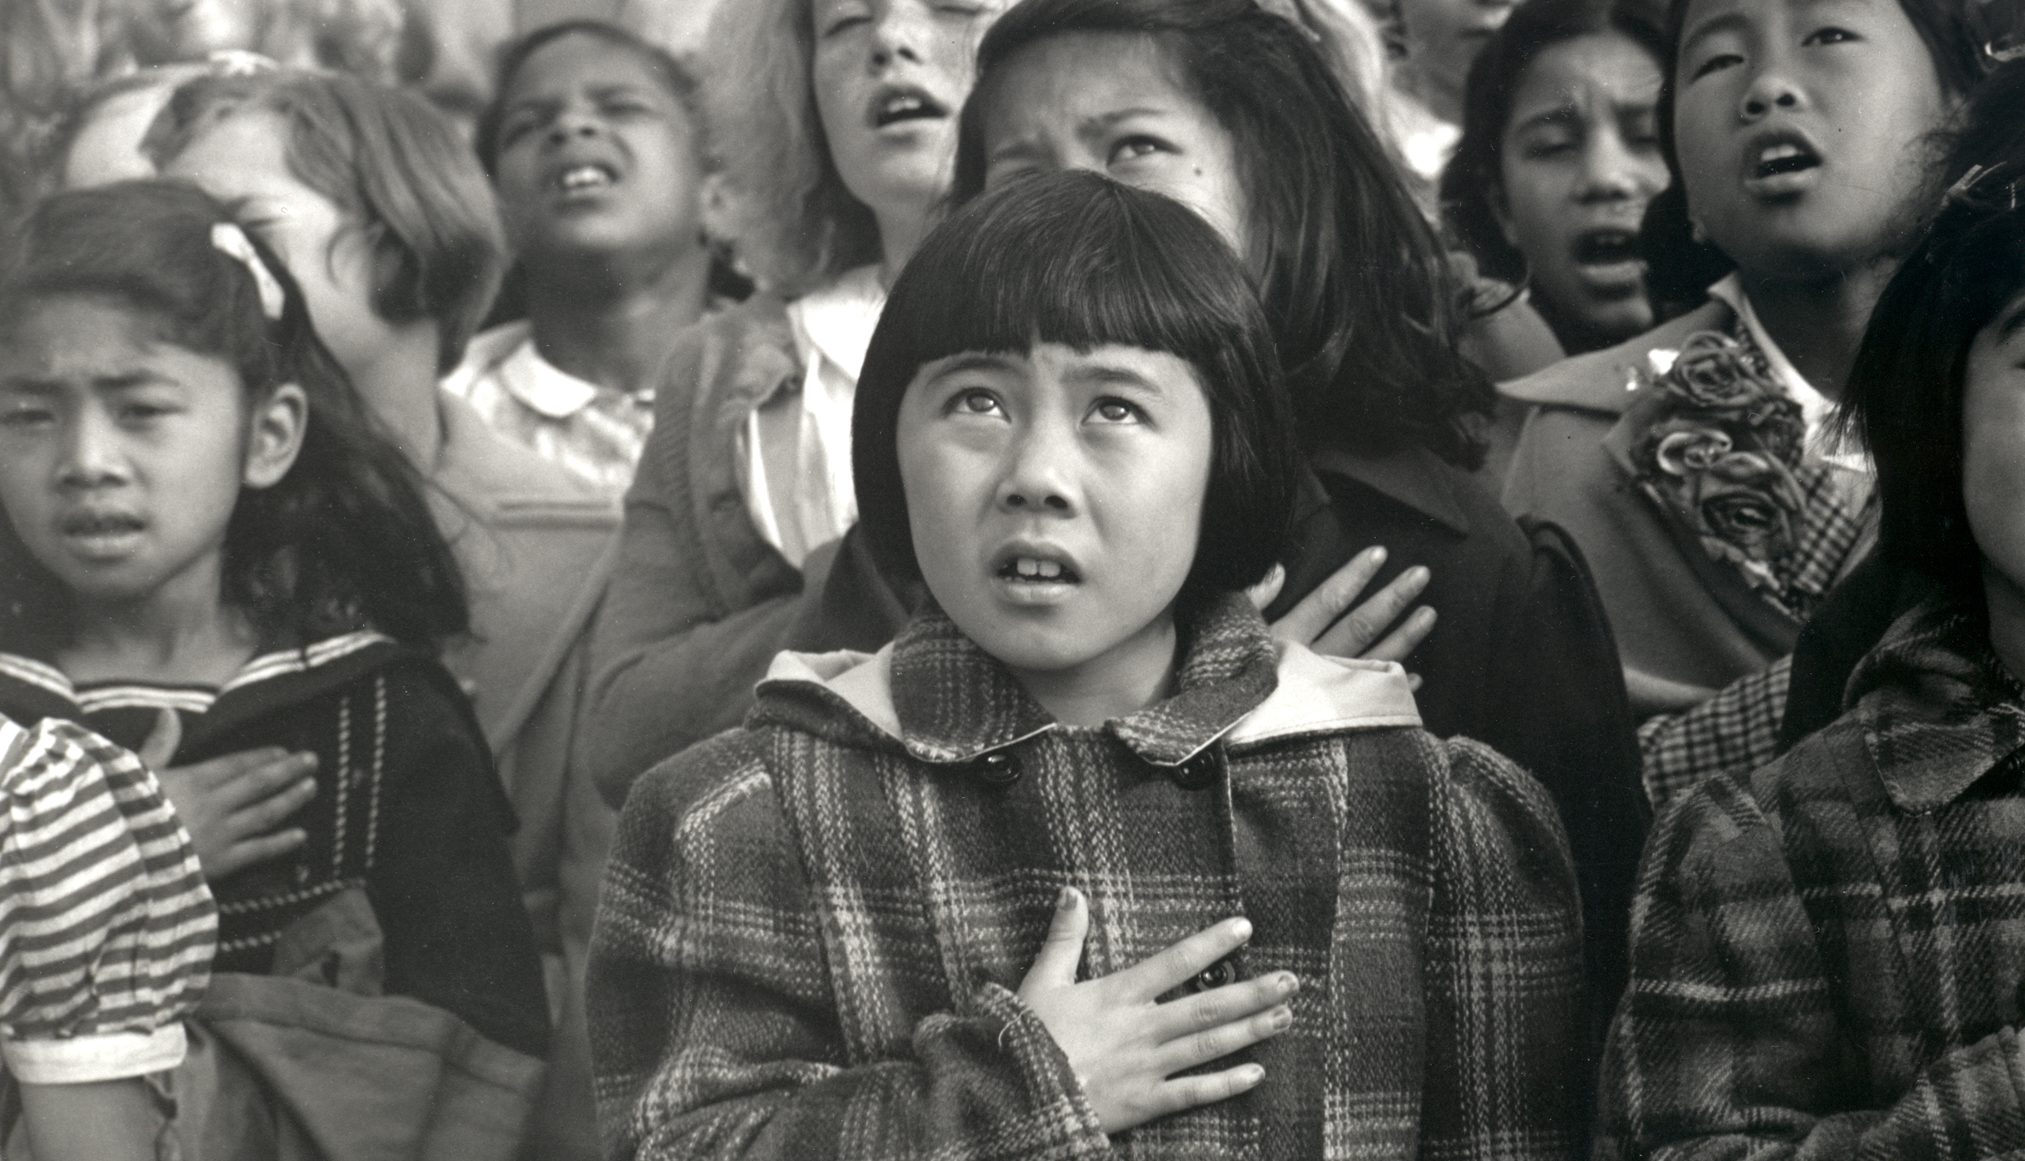 Dorothea Lange, One Nation Indivisible, 1942. © The Dorothea Lange Collection, the Oakland Museum of California, City of Oakland. Gift of Paul S. Taylor.